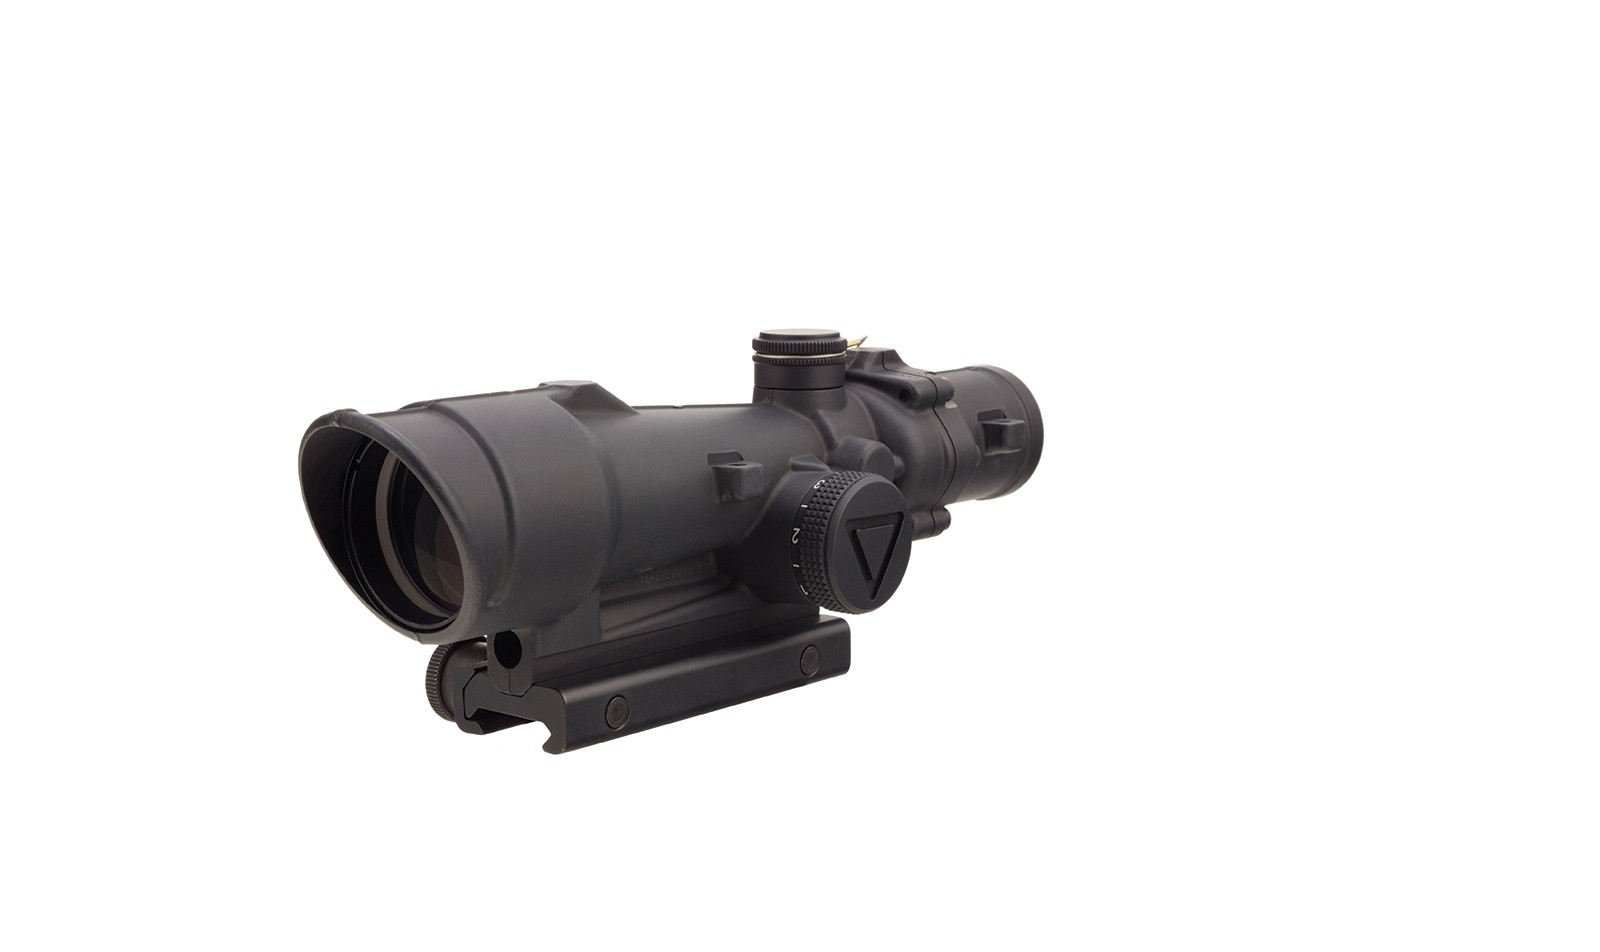 Trijicon ACOG® 3.5x35 LED Riflescope -.308 / 7.62 BDC